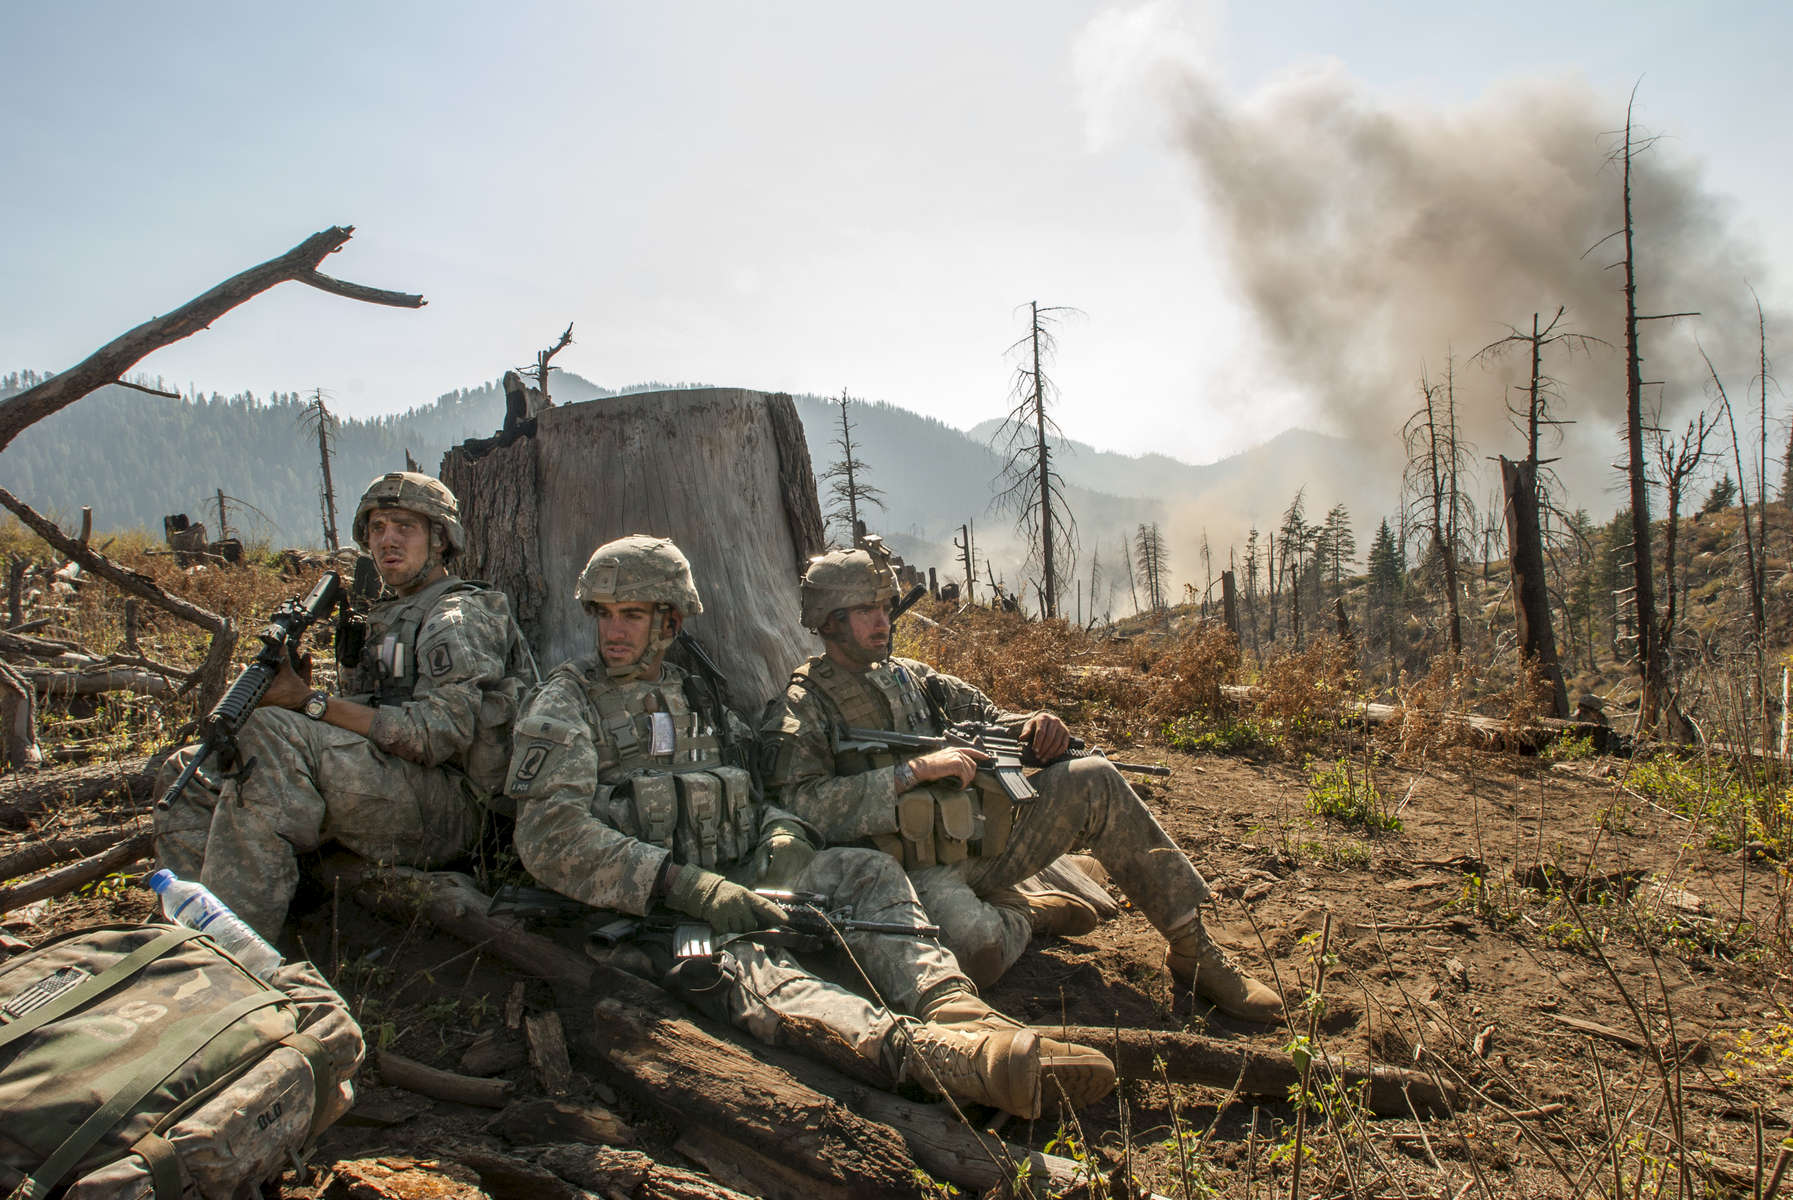 soldiers with the 173rd battle company, on a battalian-wide mission in the korengal valley in the village of yakachina. captain dan kearney overwatches his troops and controls close air support fire from above the village with a group of his soldiers and the jtacssecond part of the mission is on the abascar rideline, looking for caves and weapons caches and known taliban leaders.